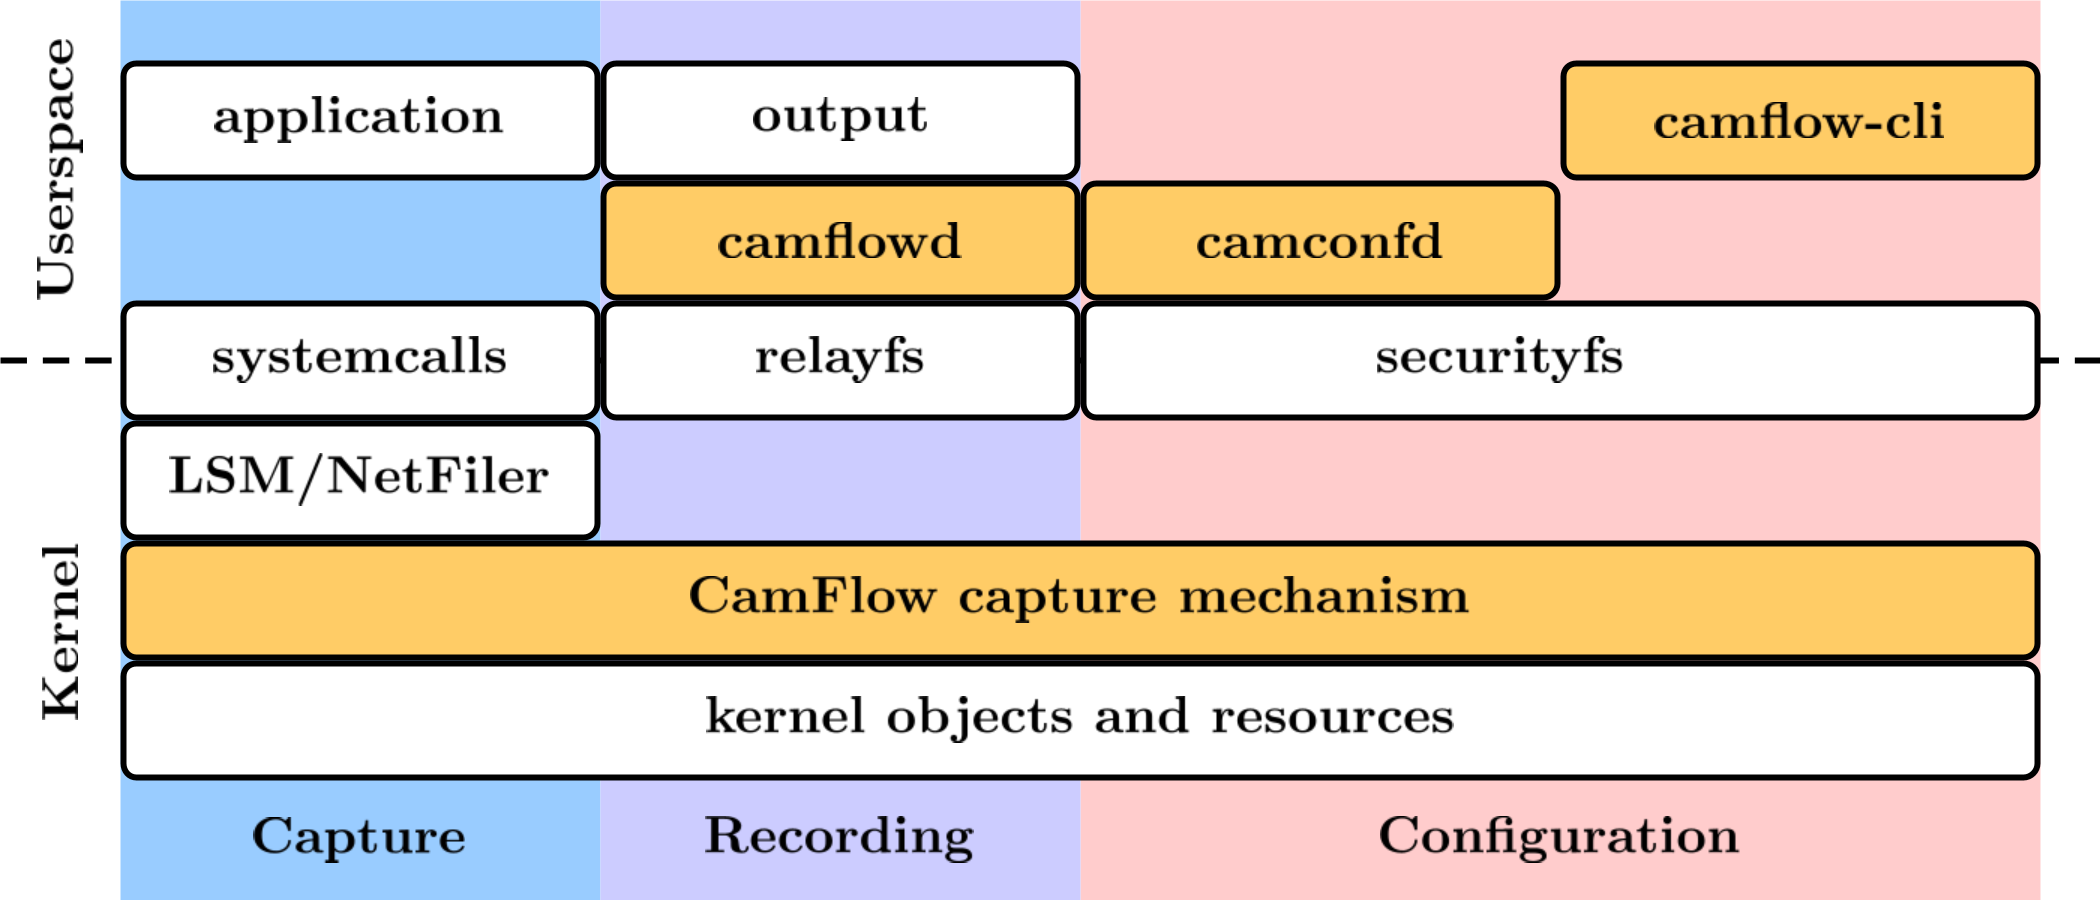 CamFlow architecture overview